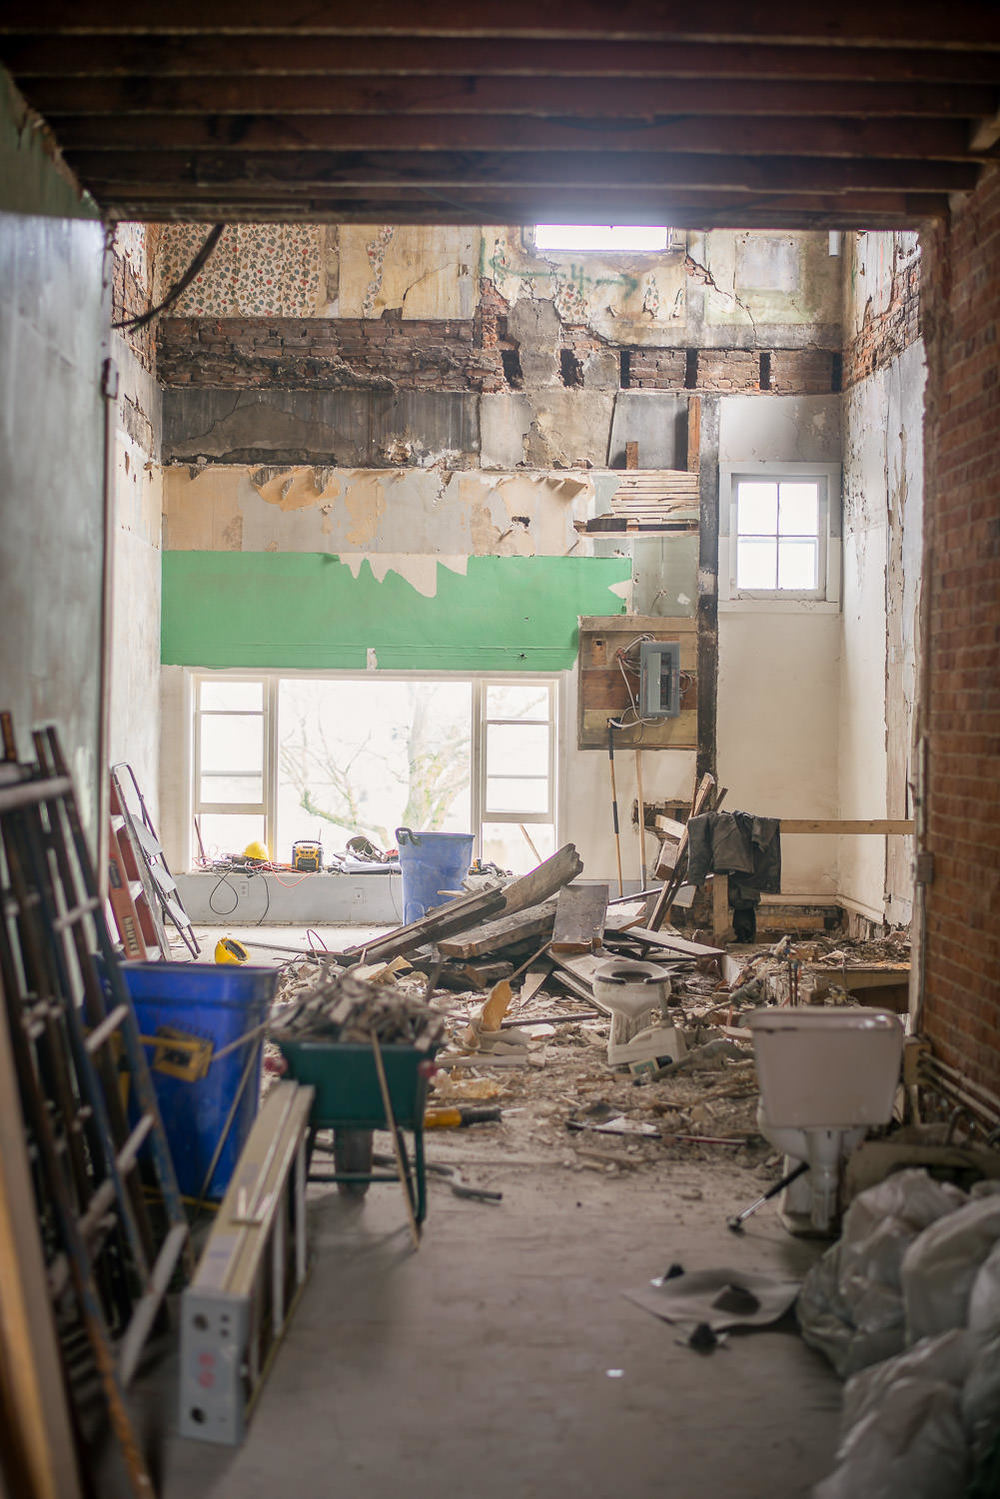 Edisons-Inn-Rennovations-Demolitio-Stratford-046.jpg